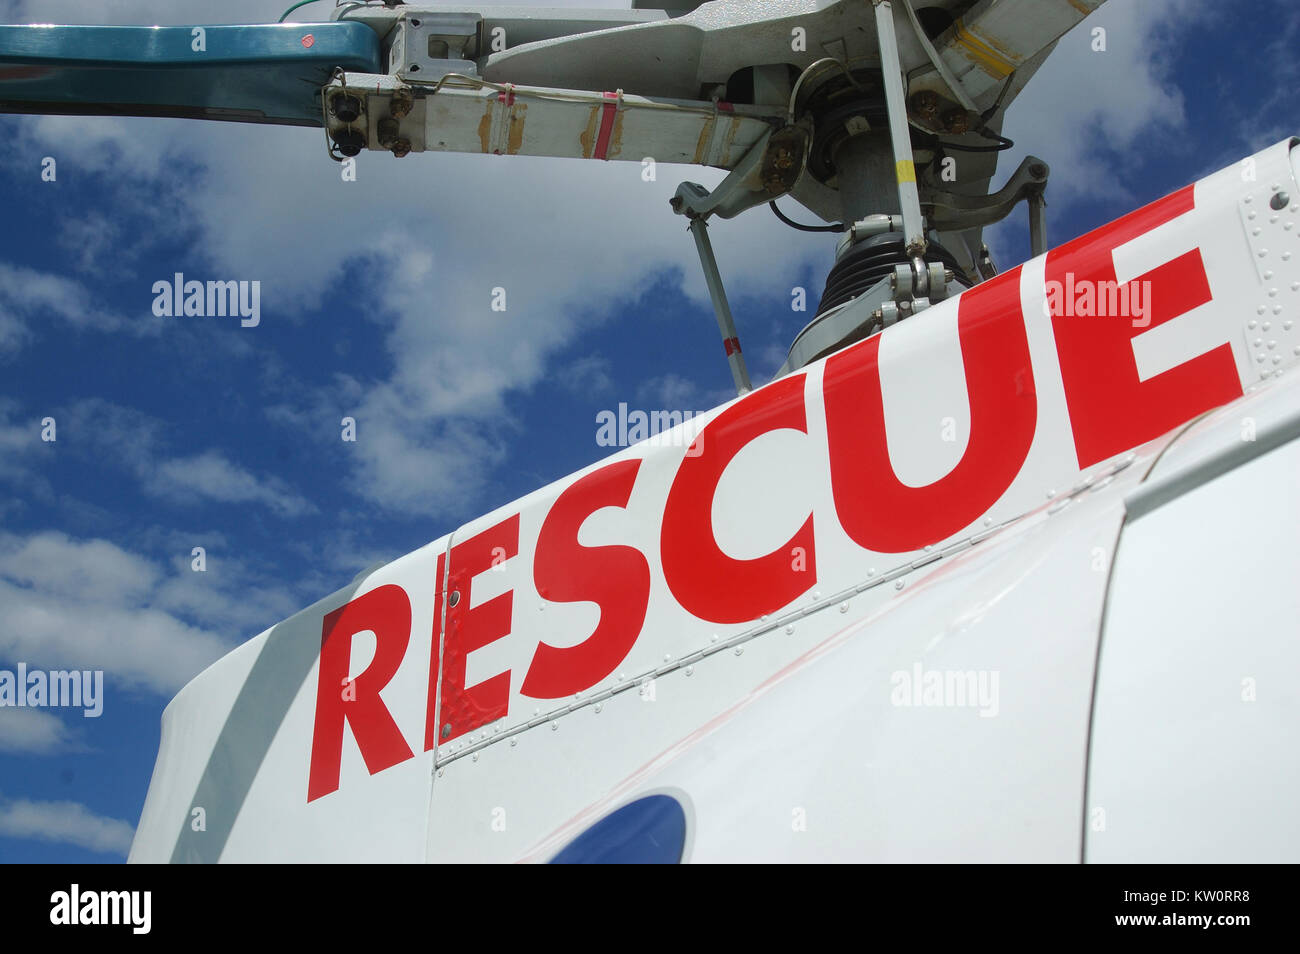 rescue signage on helicopter - Stock Image